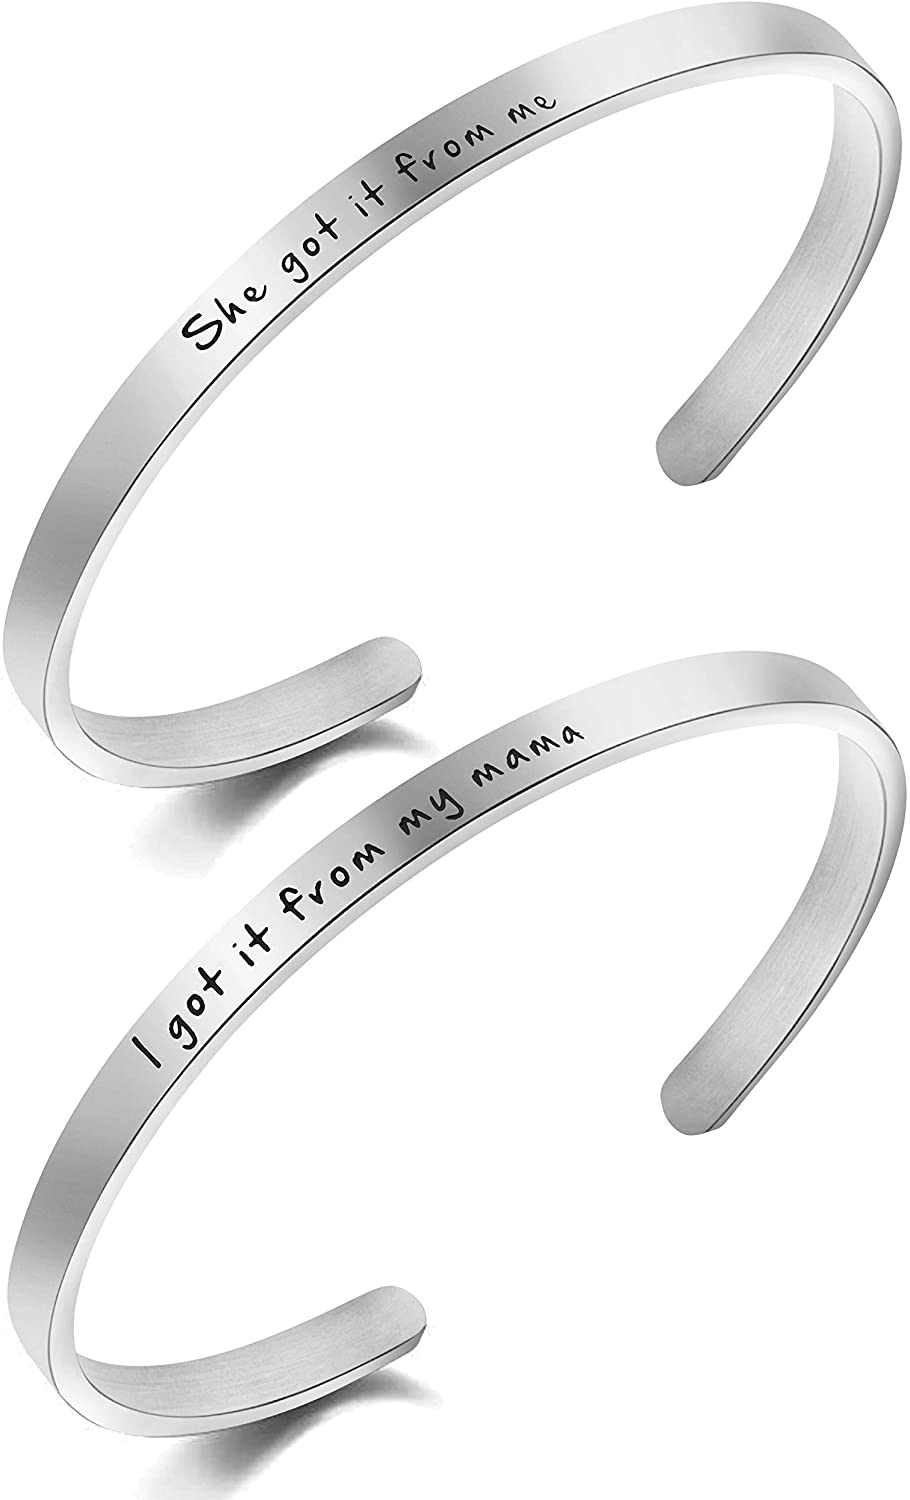 Awegift Mother and Daughter Set Bracelets 2 Cuff Bangle for Women Daughter Her Best Friends Personalized Stainless Steel Jewelry Mother's Day Birthday Christmas Friendship Gifts